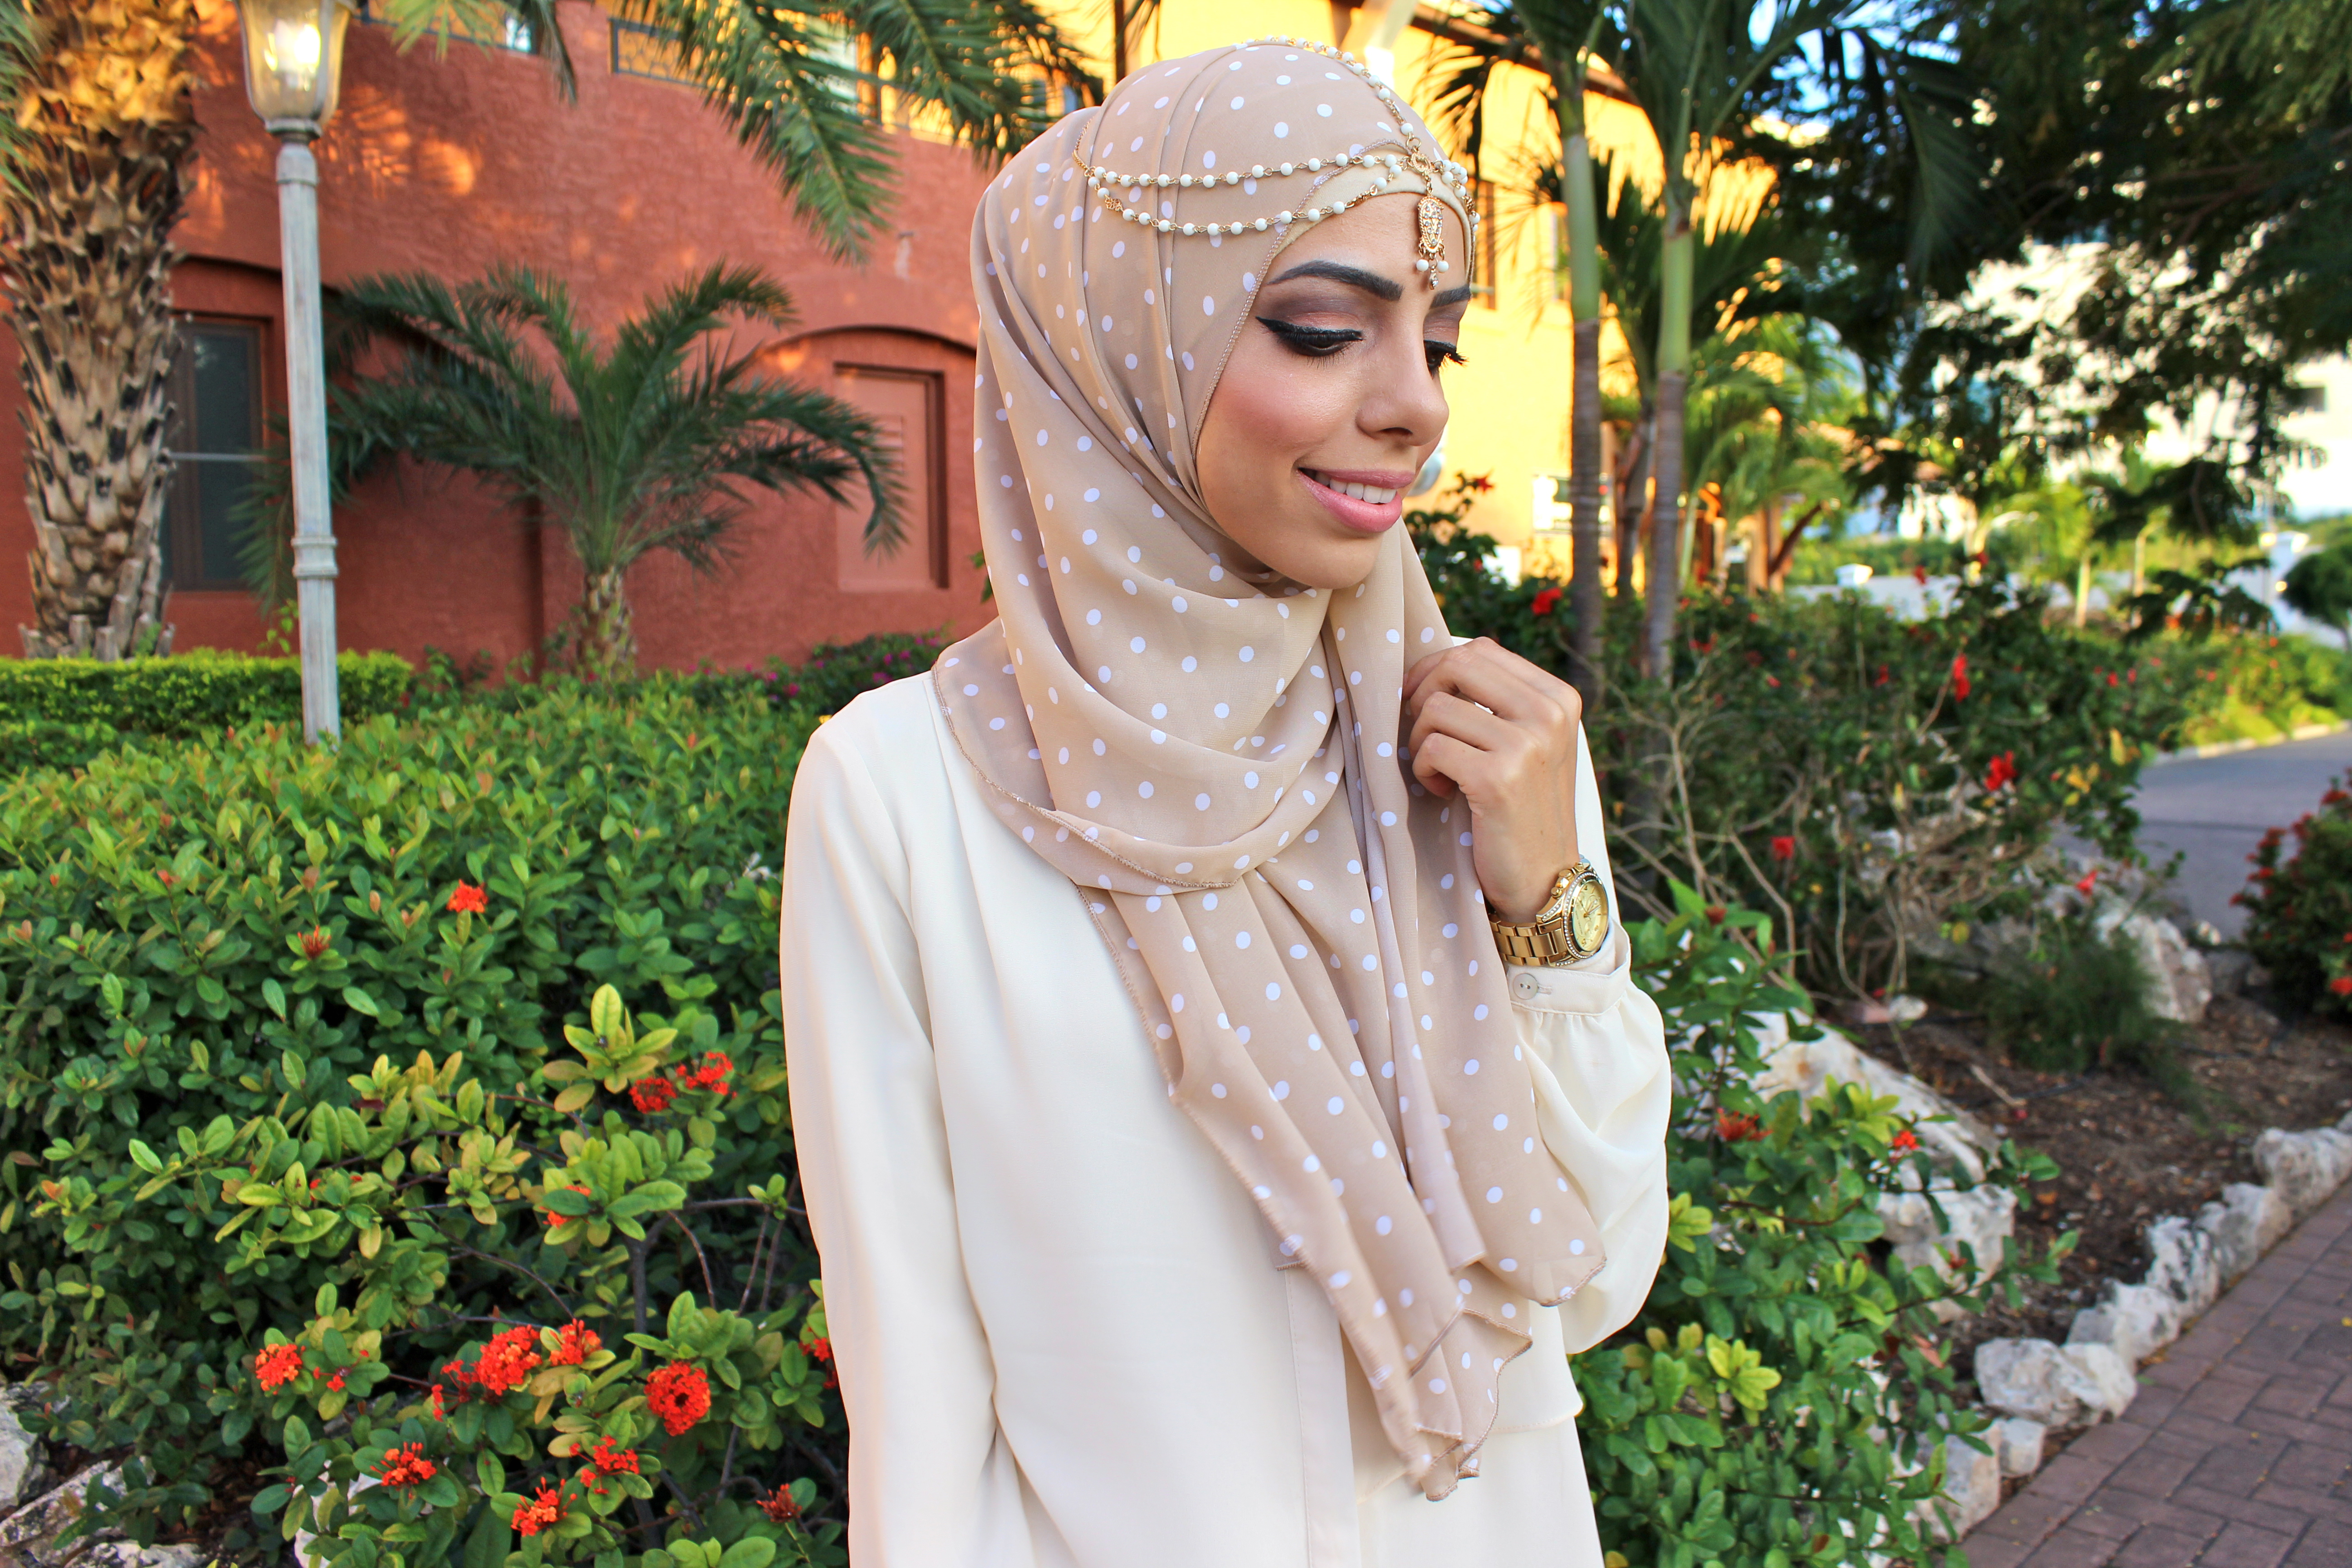 Neutrals Heba Jay Headpiece Hijab Austere Attire Sold Out Other Neutral Here